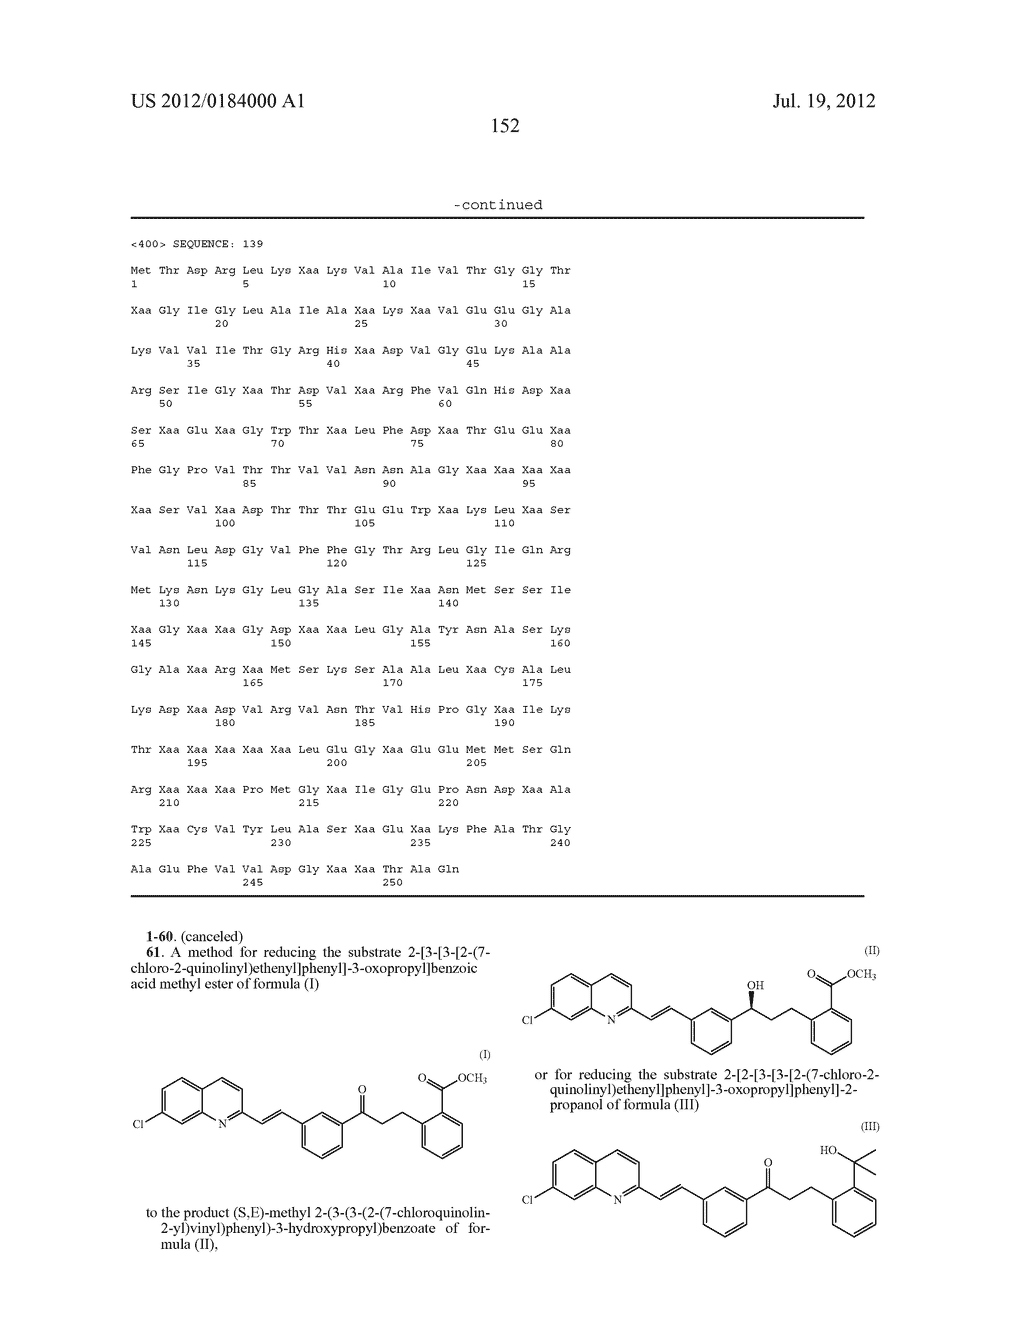 KETOREDUCTASE POLYPEPTIDES FOR THE PRODUCTION OF (S,E)-METHYL     2-(3-(3-(2-(7-CHLOROQUINOLIN-2-YL)VINYL)PHENYL)-3-HYDROXYPROPYL)BENZOATE - diagram, schematic, and image 154